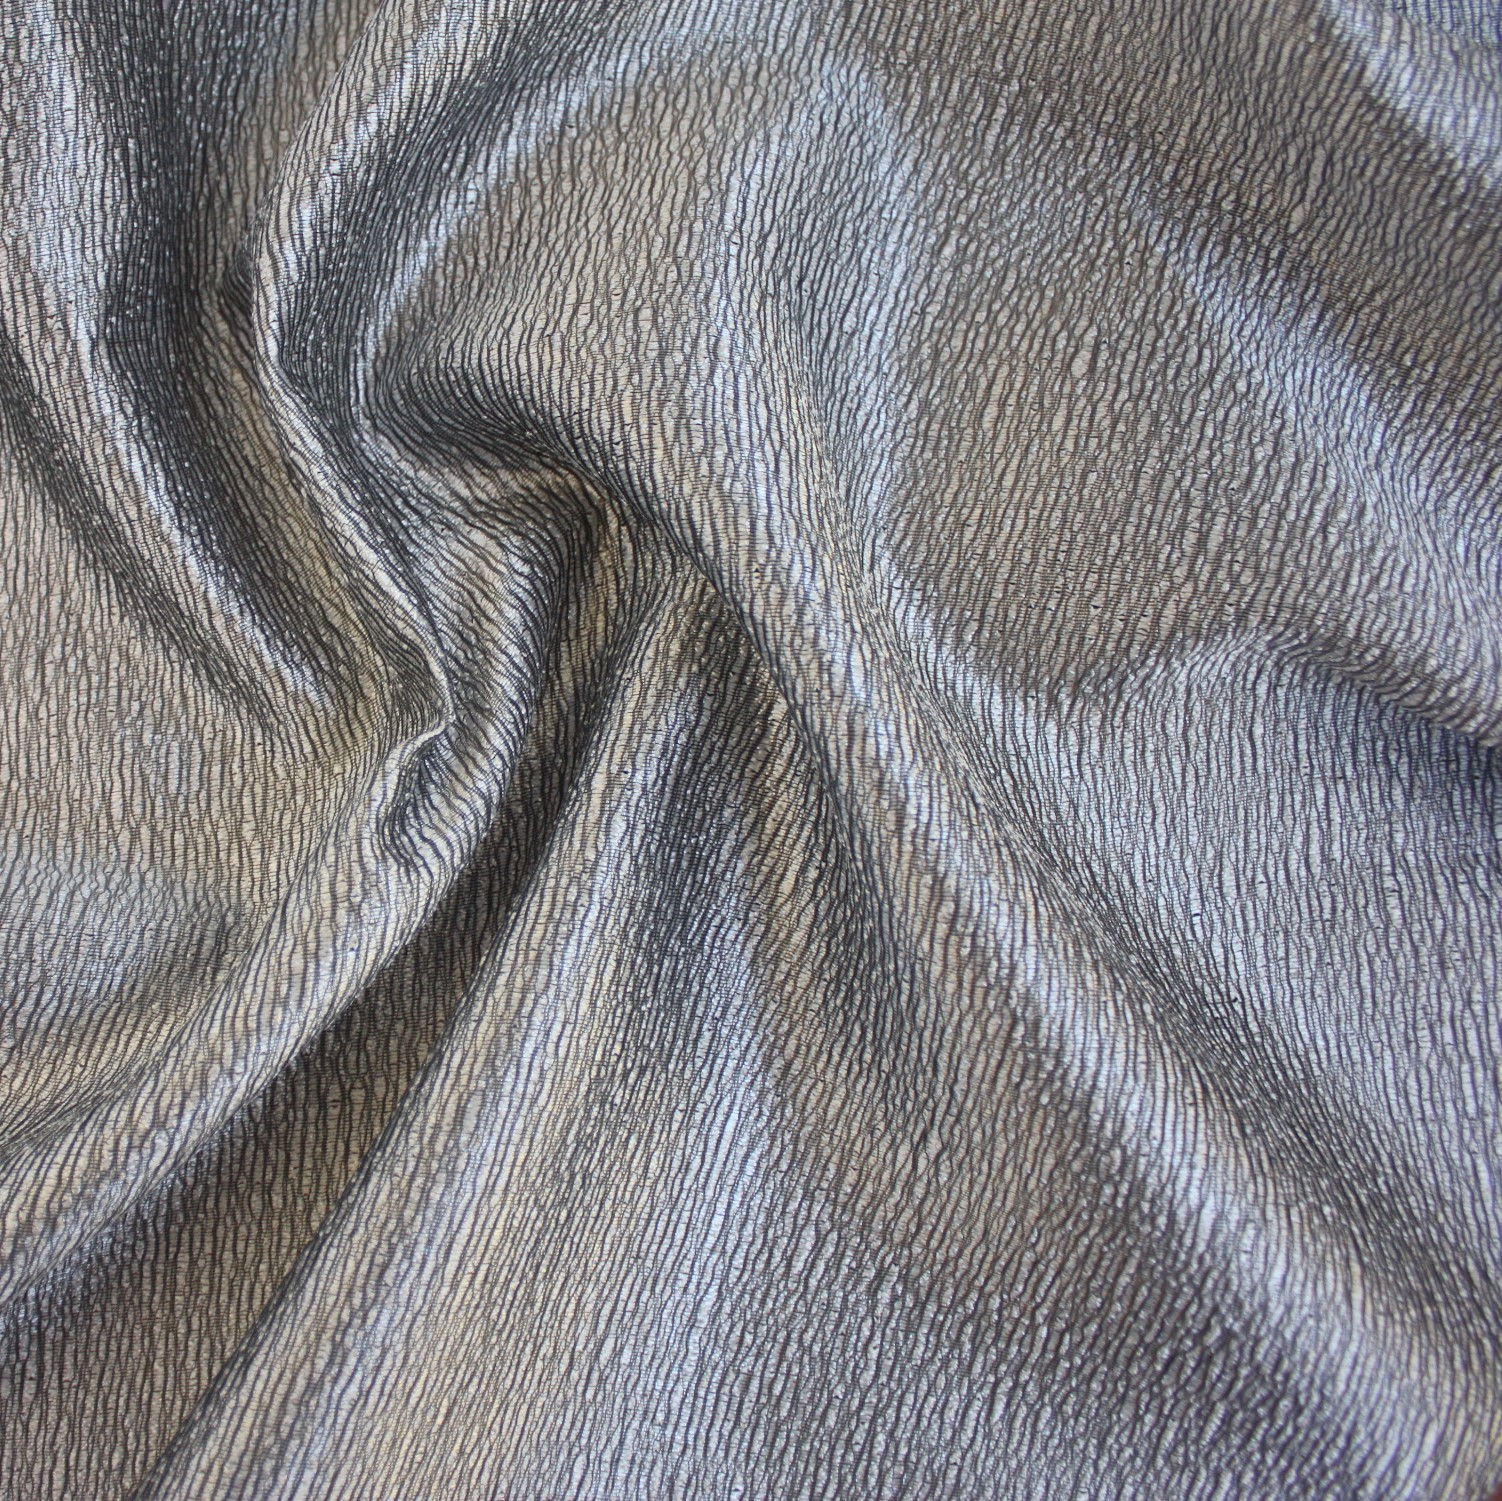 Silver Metallic Crackle Table Linen Rental Tablecloth